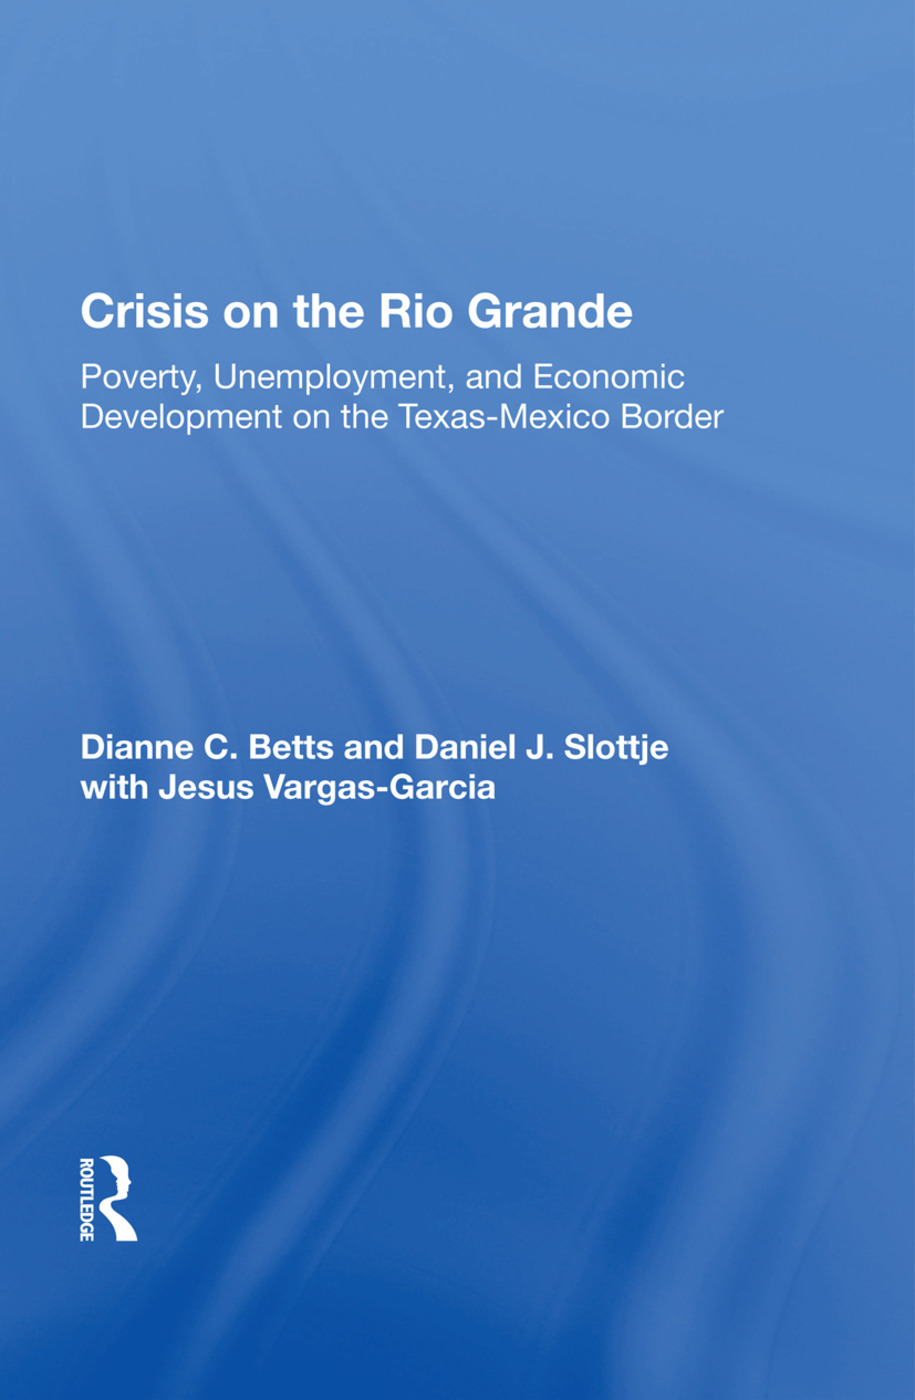 Crisis on the Rio Grande